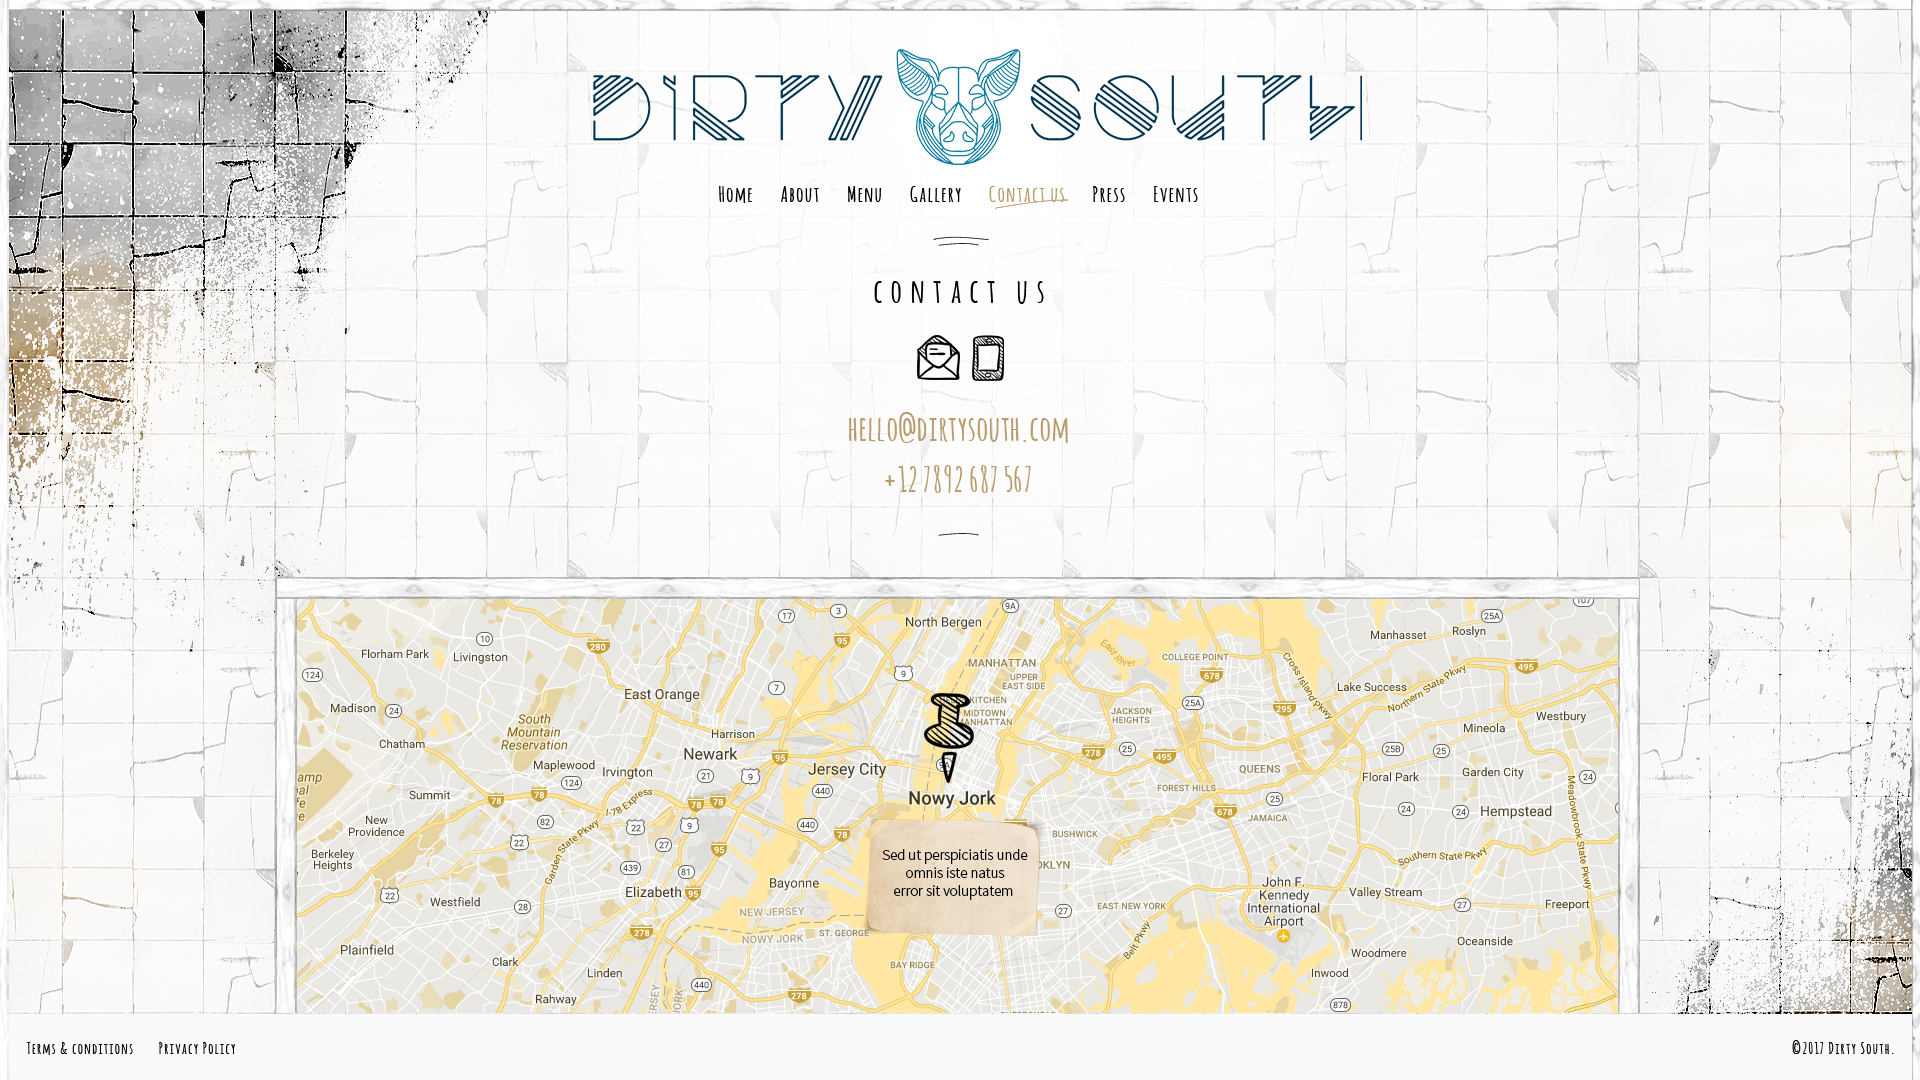 Dirty South – contact